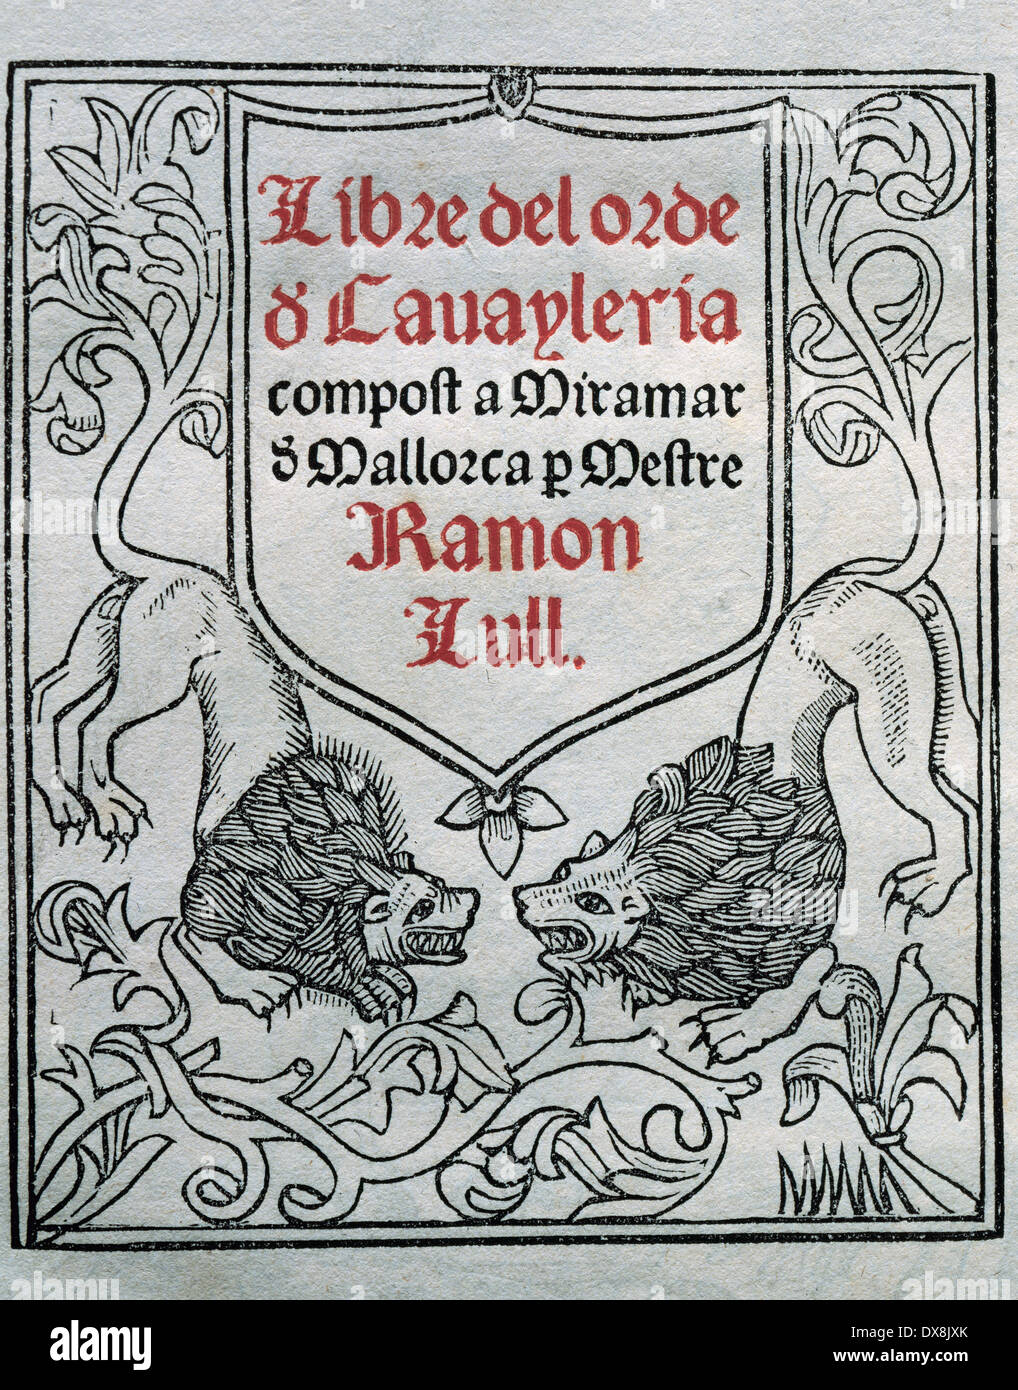 Ramon Llull (1235-1316). Spanish writer and philosopher. Book of Order of cavalry. Manuscript, 15th century. Title cover. - Stock Image